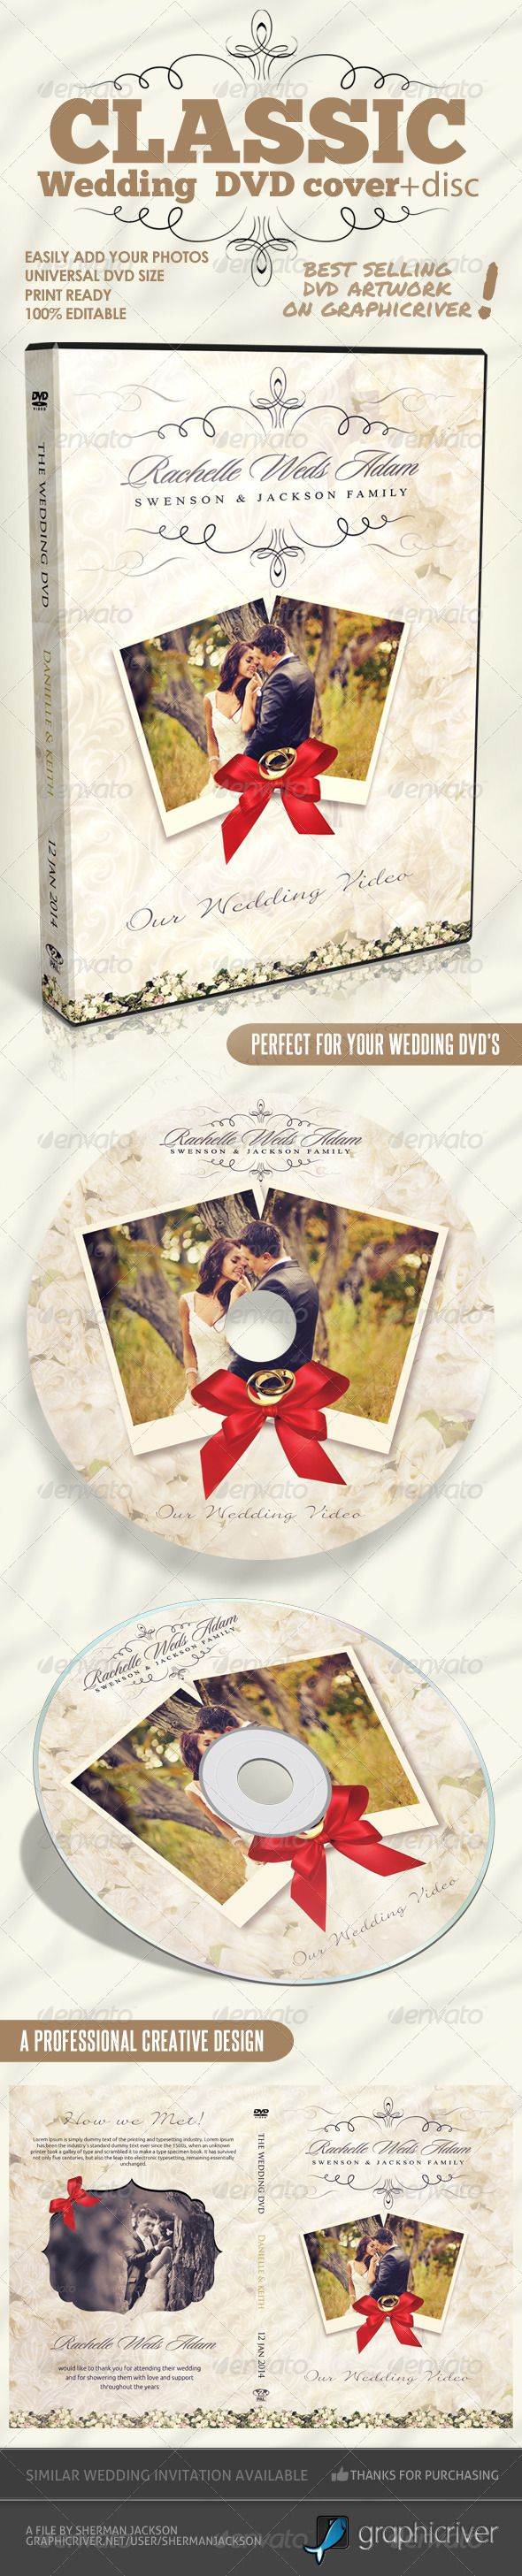 Classique wedding dvd covers print templates cd cover template classique wedding dvd covers pronofoot35fo Choice Image